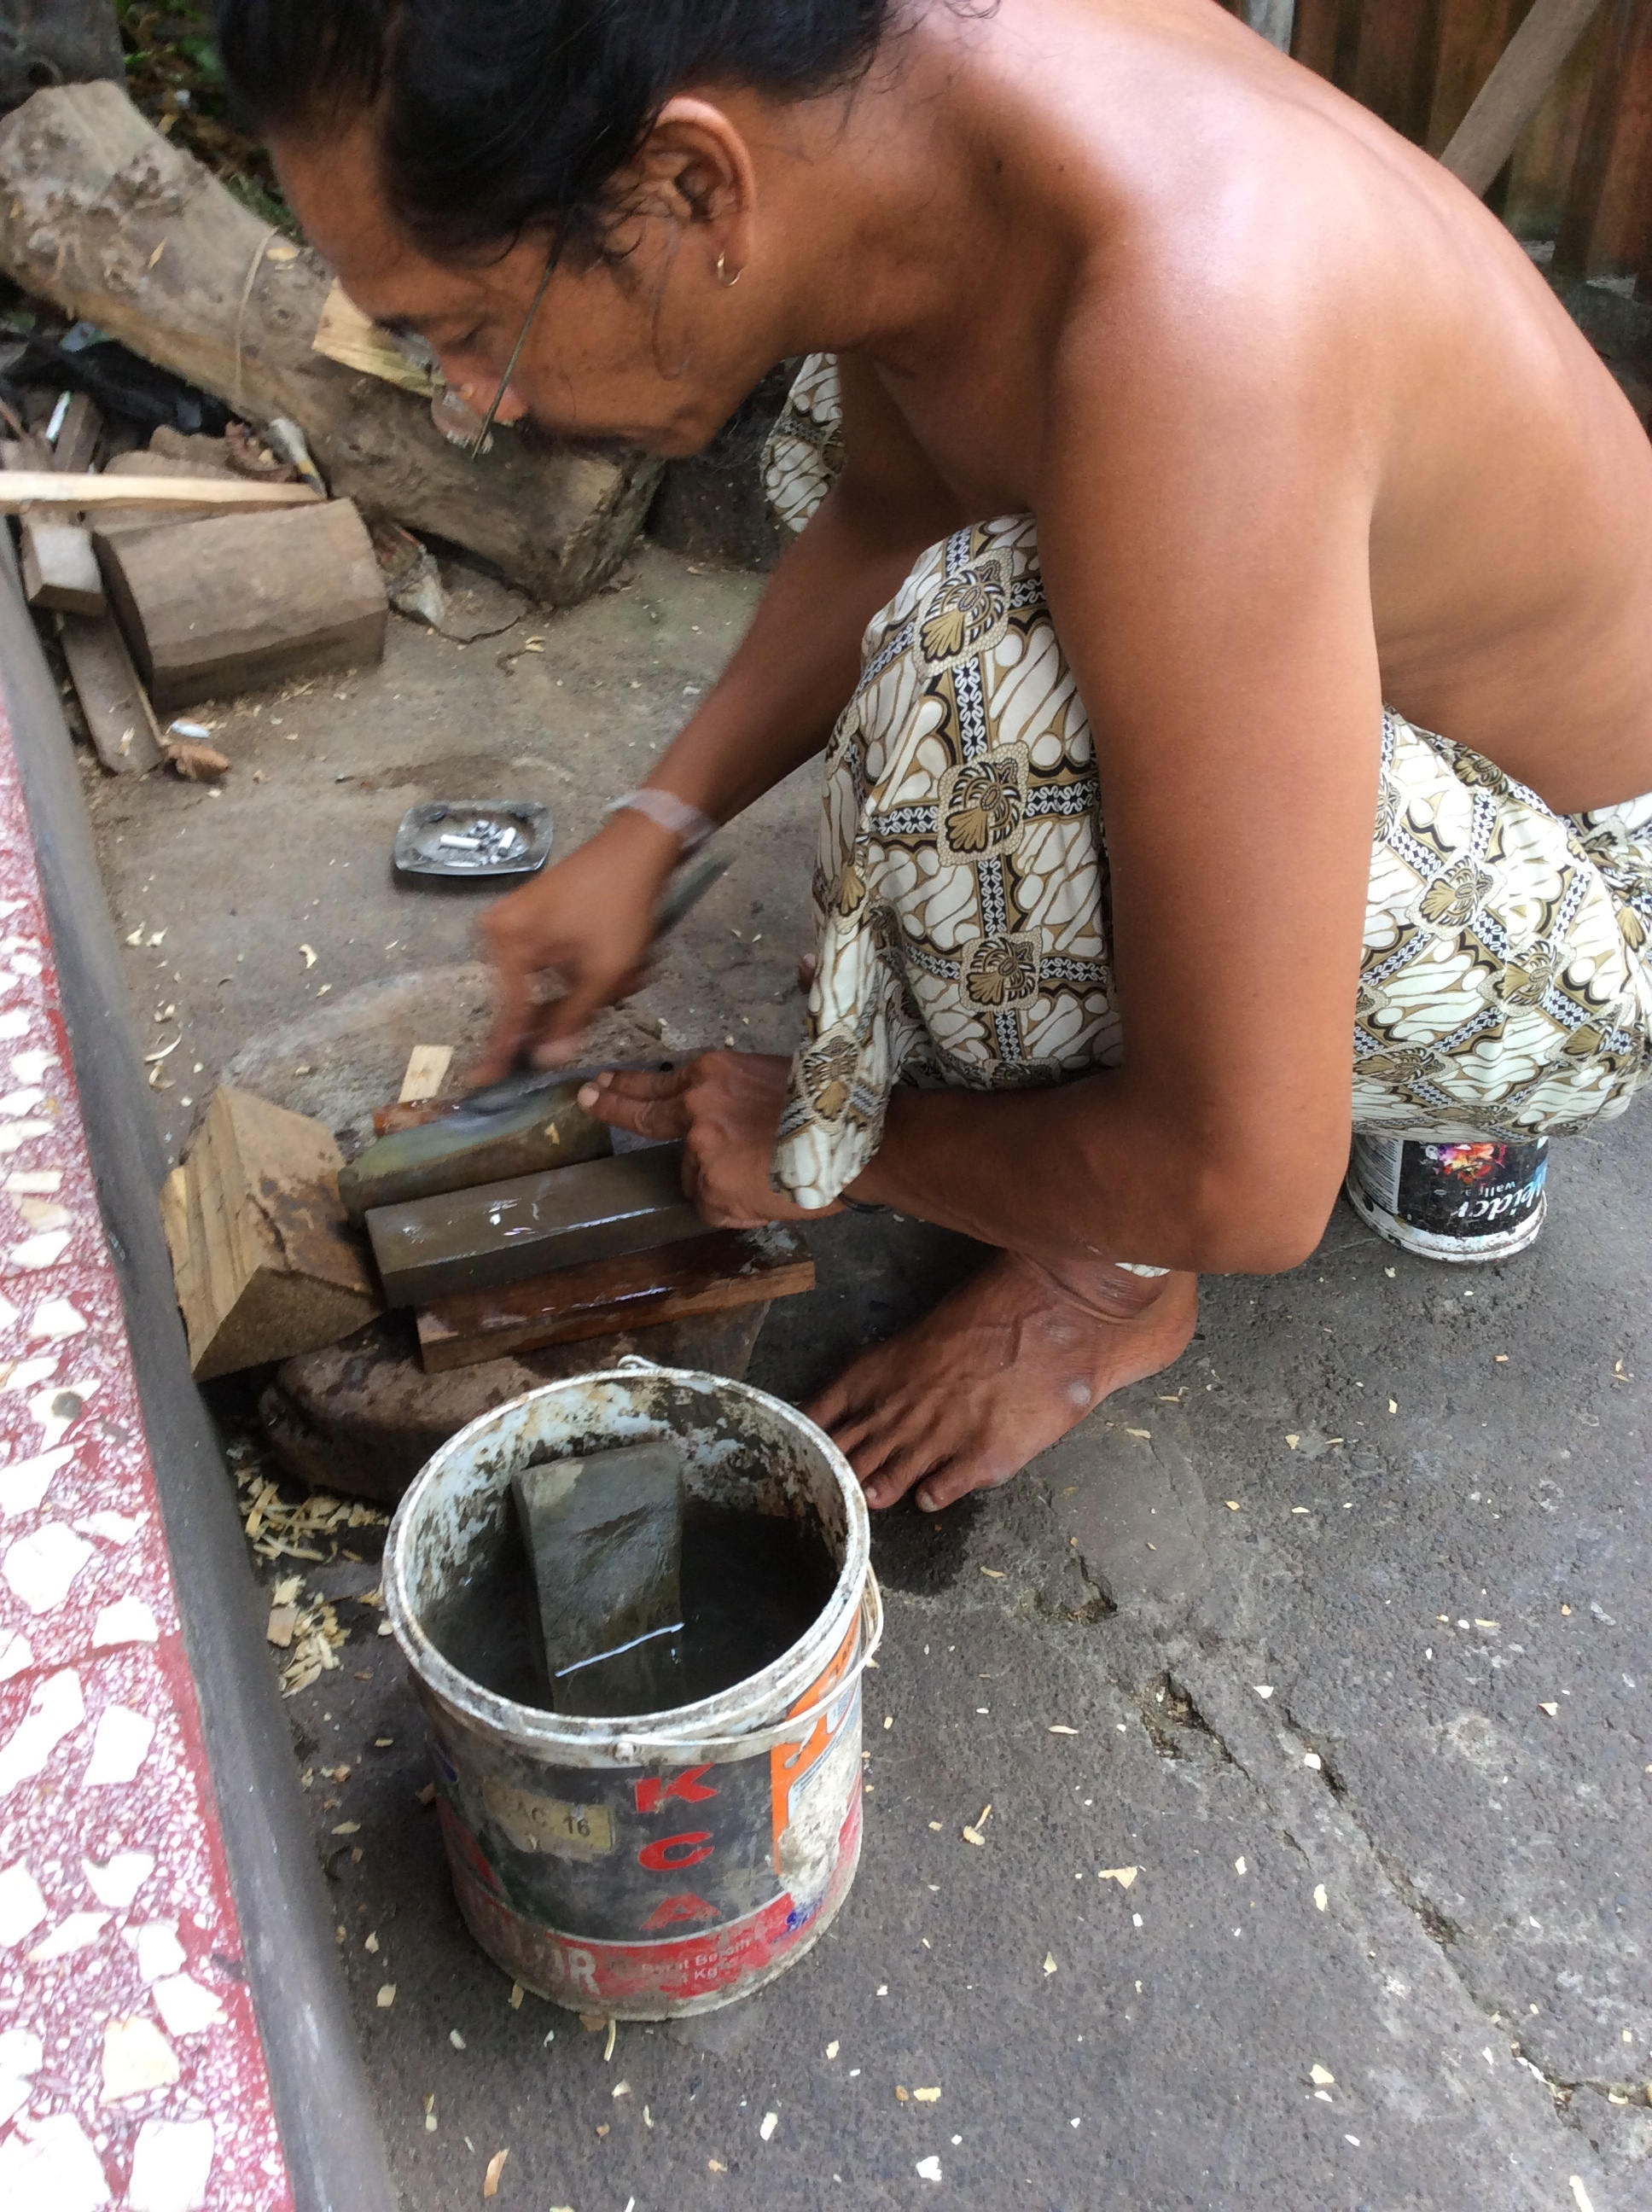 Tool sharpening in Bali is very different than what we do here. It seems as if the stones are sort of in between oil stones and water stones. They are softer than oil stones but used with water. There is no slurry from the stone like when you use a water stone.